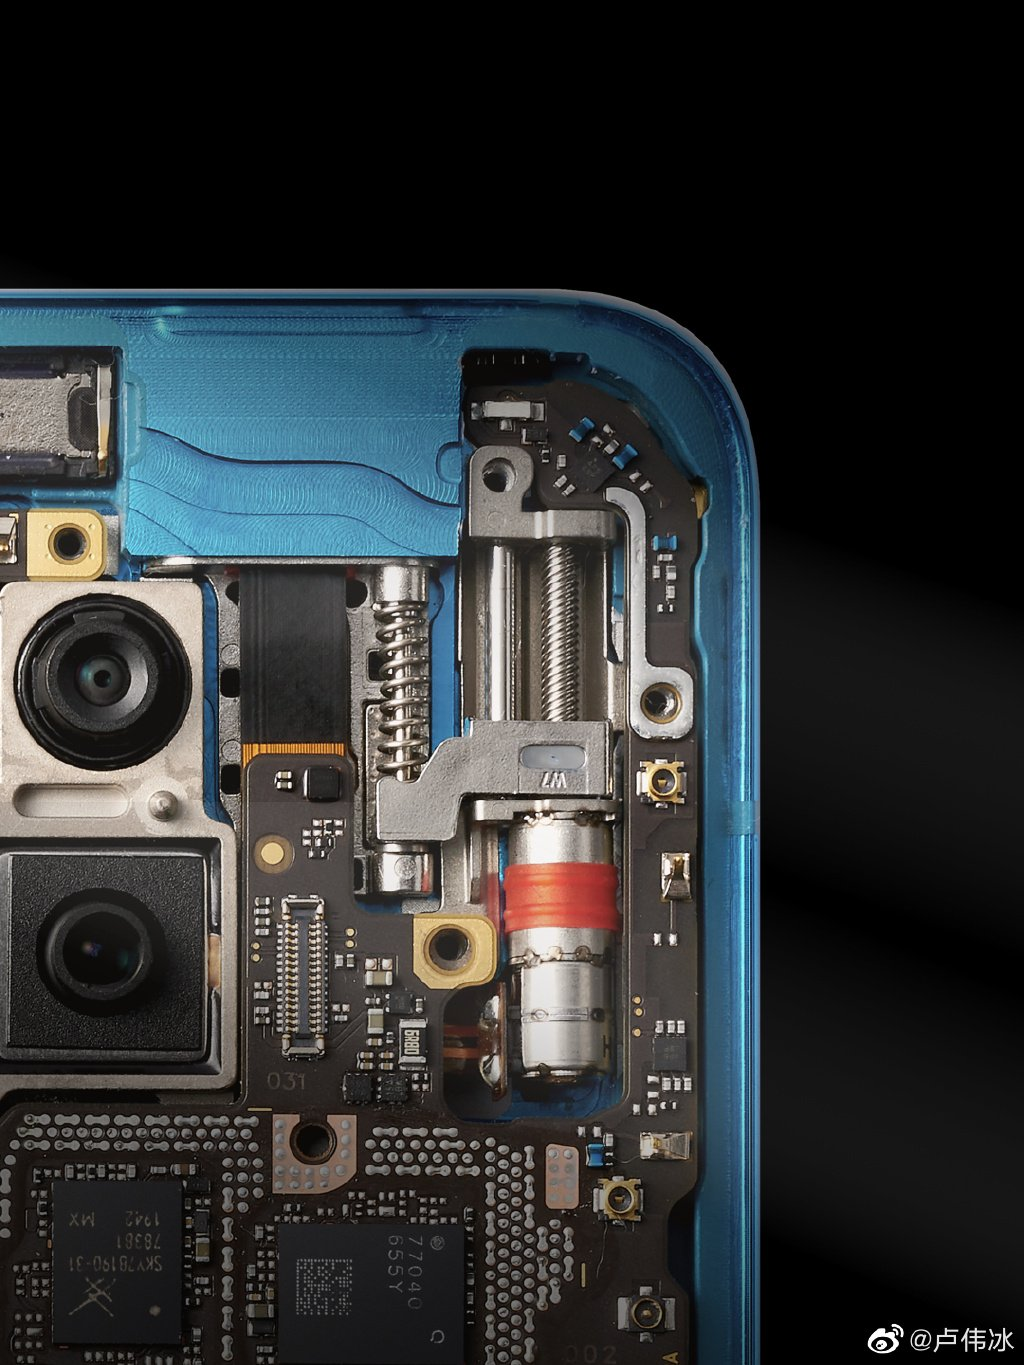 Redmi K30 Pro crams 61 components per sq centimeter with 'Stacked Motherboard' design 2